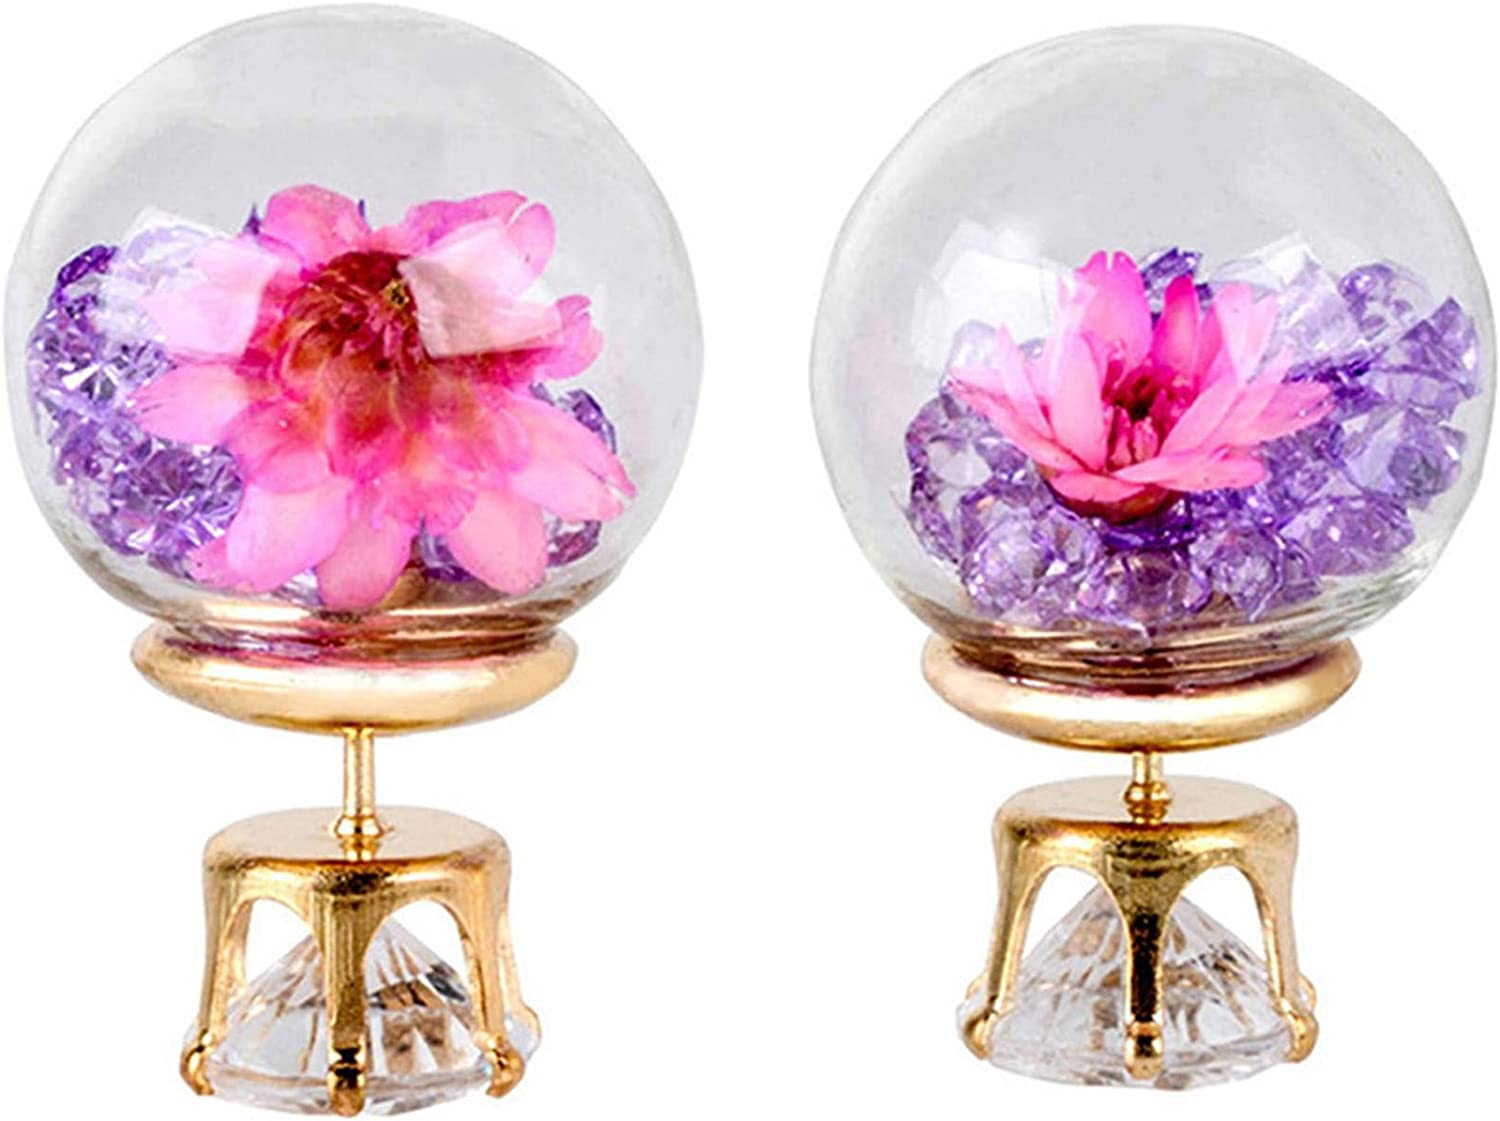 Winwinfly Colorful Glass Ball Pendant Earring Glass Ball Charms Dry Flower Crystal Ball Earrings for Woman,Girl